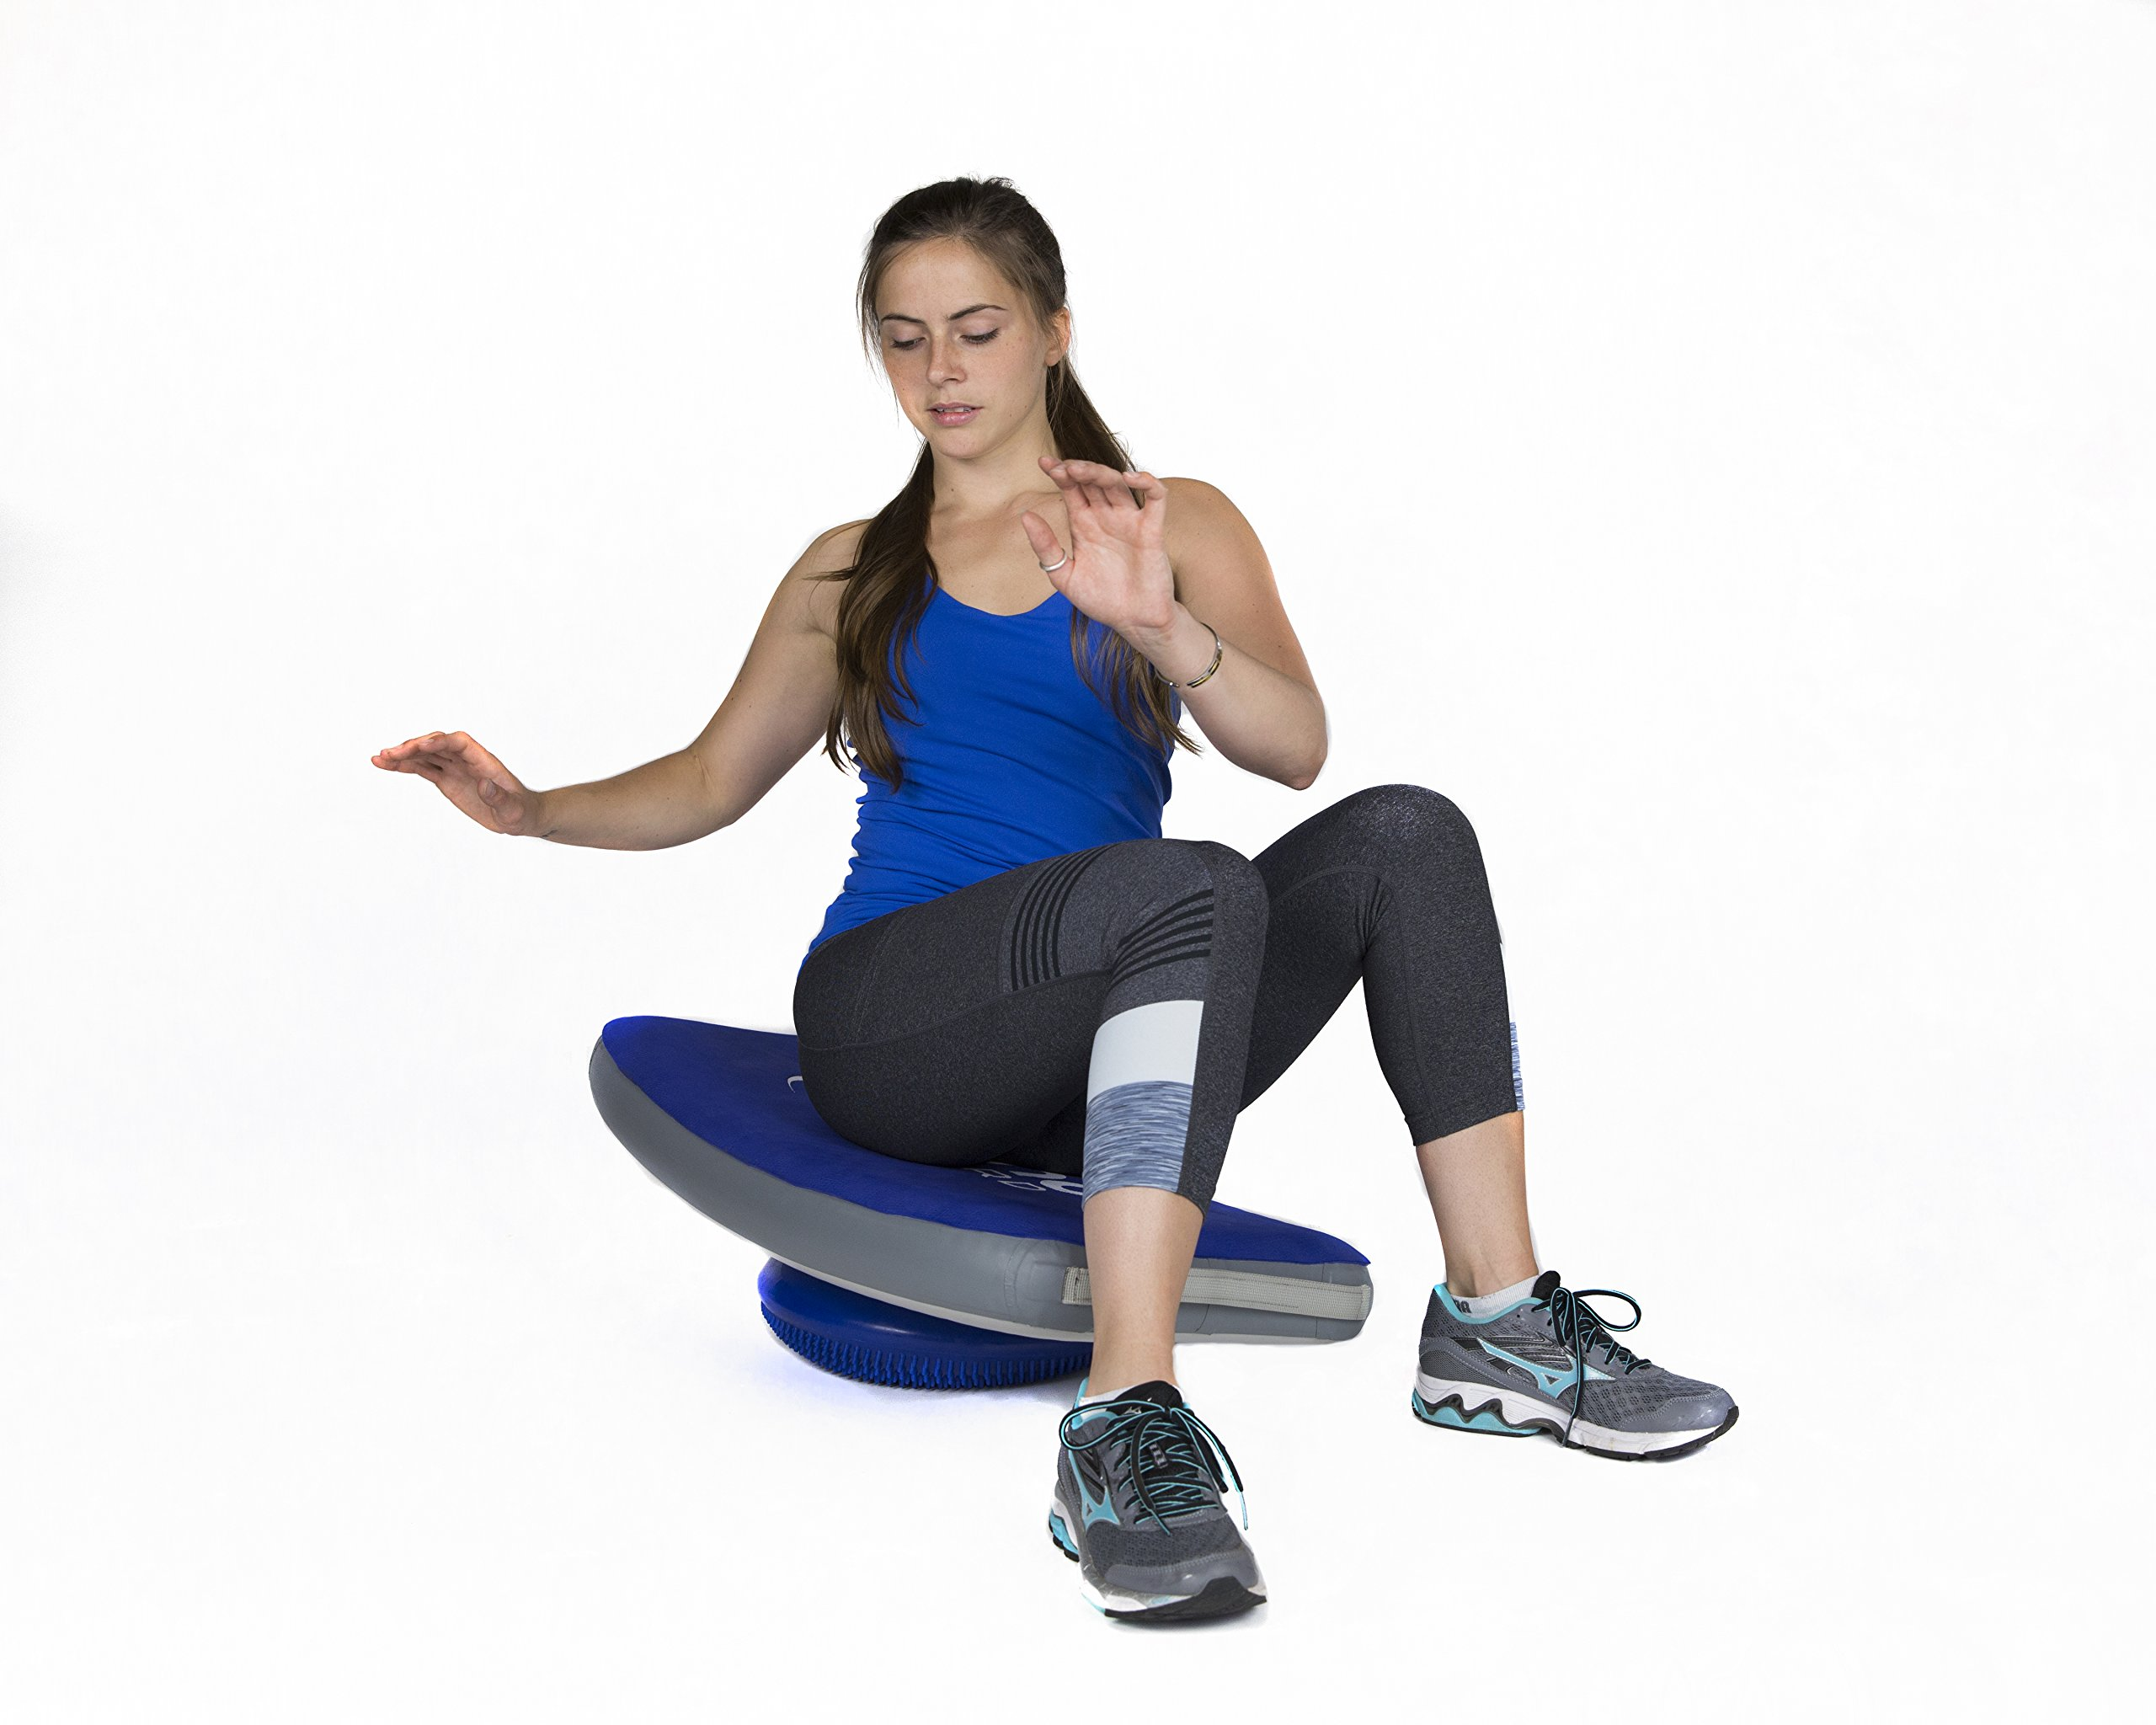 KUMO Inflatable Balance Board for Surf Training, Exercise, Physical Therapy, Standing Desk & Kids - Balancing Rocker Boards with Roller - Soft Inflatable Surfing Trainer Improves Balance & Strength by Kumo Board (Image #7)